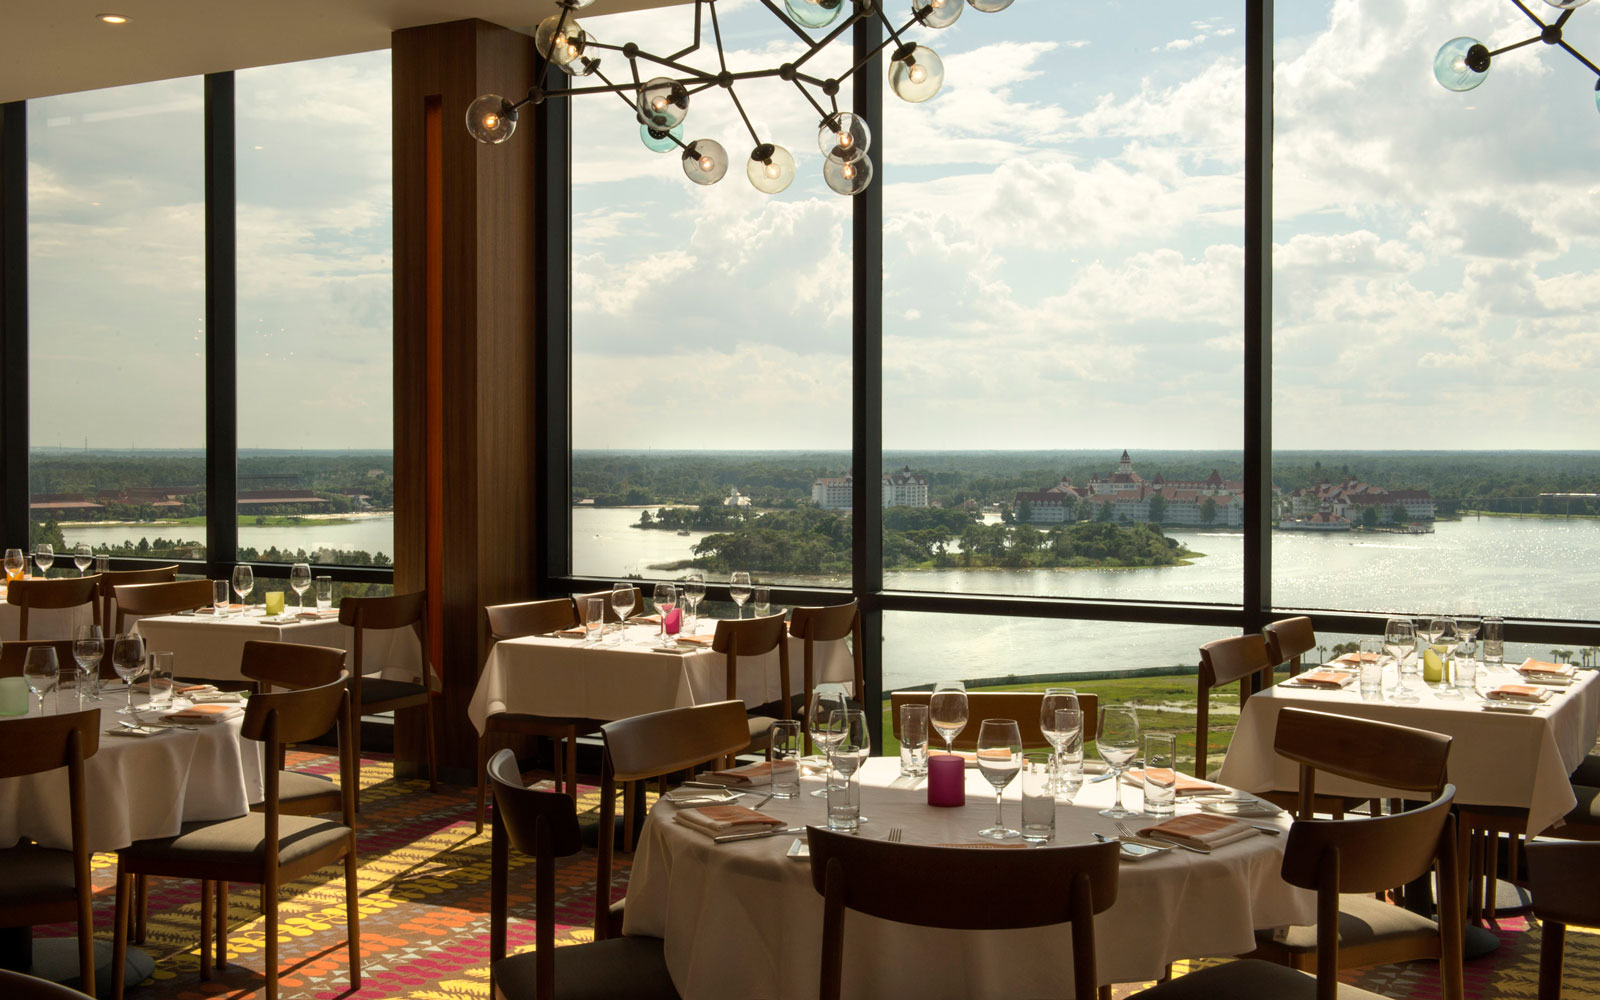 California Grill, Contemporary Resort